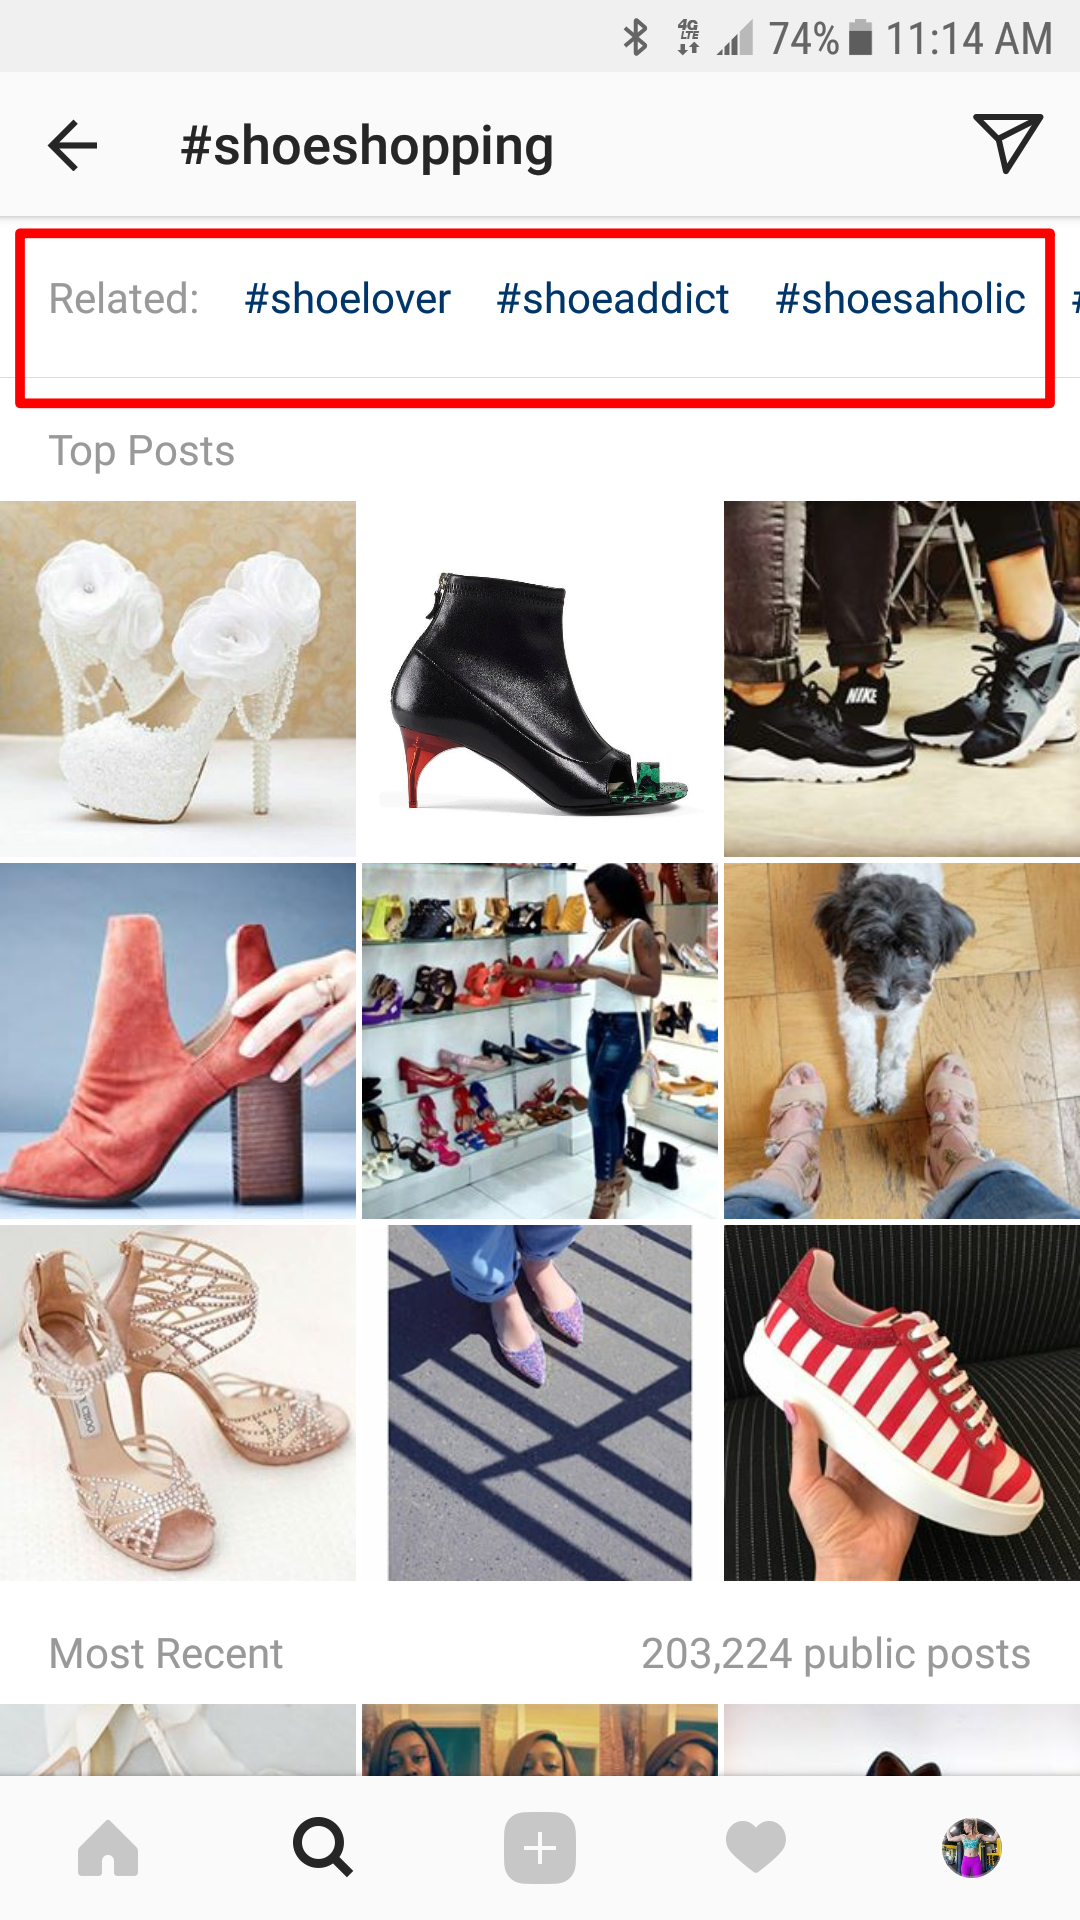 #shoeshopping Instagram hashtag example